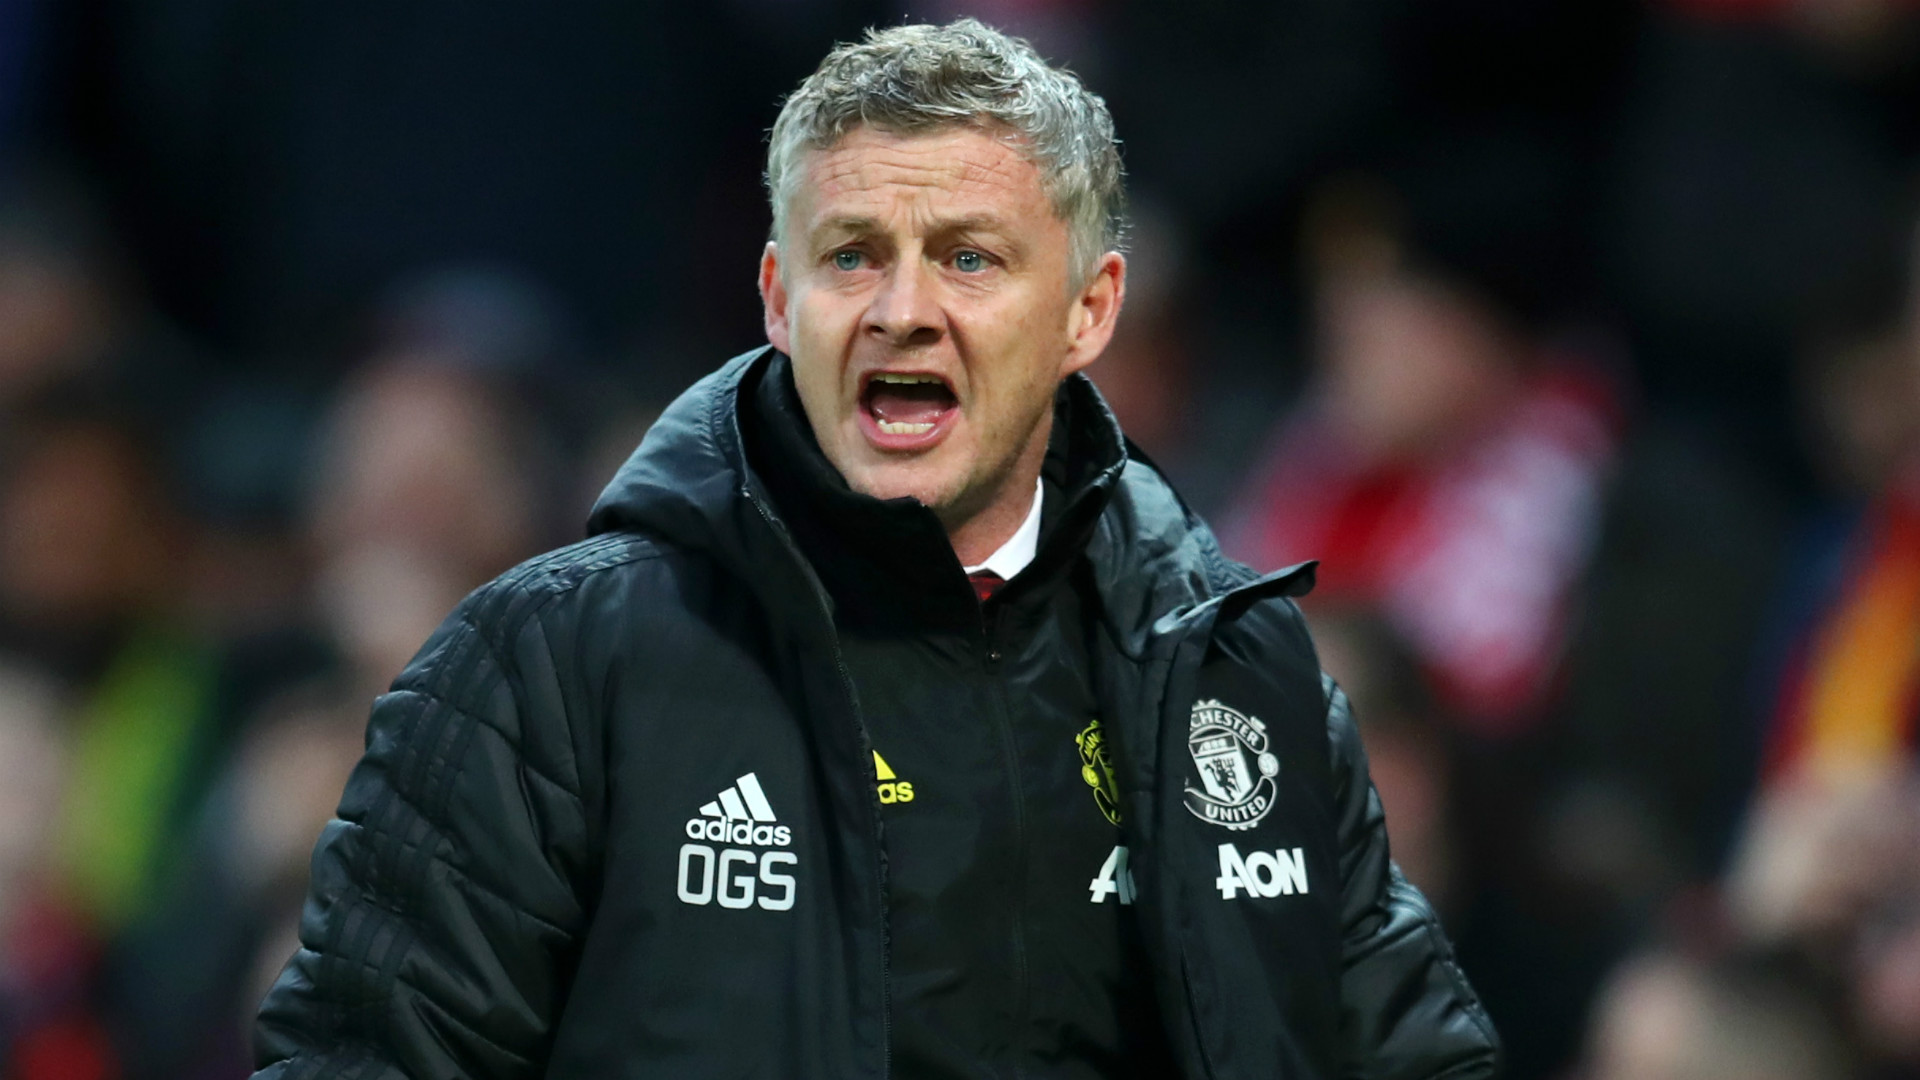 Man Utd will cut out sloppiness under Solskjaer' – Inconsistent ...